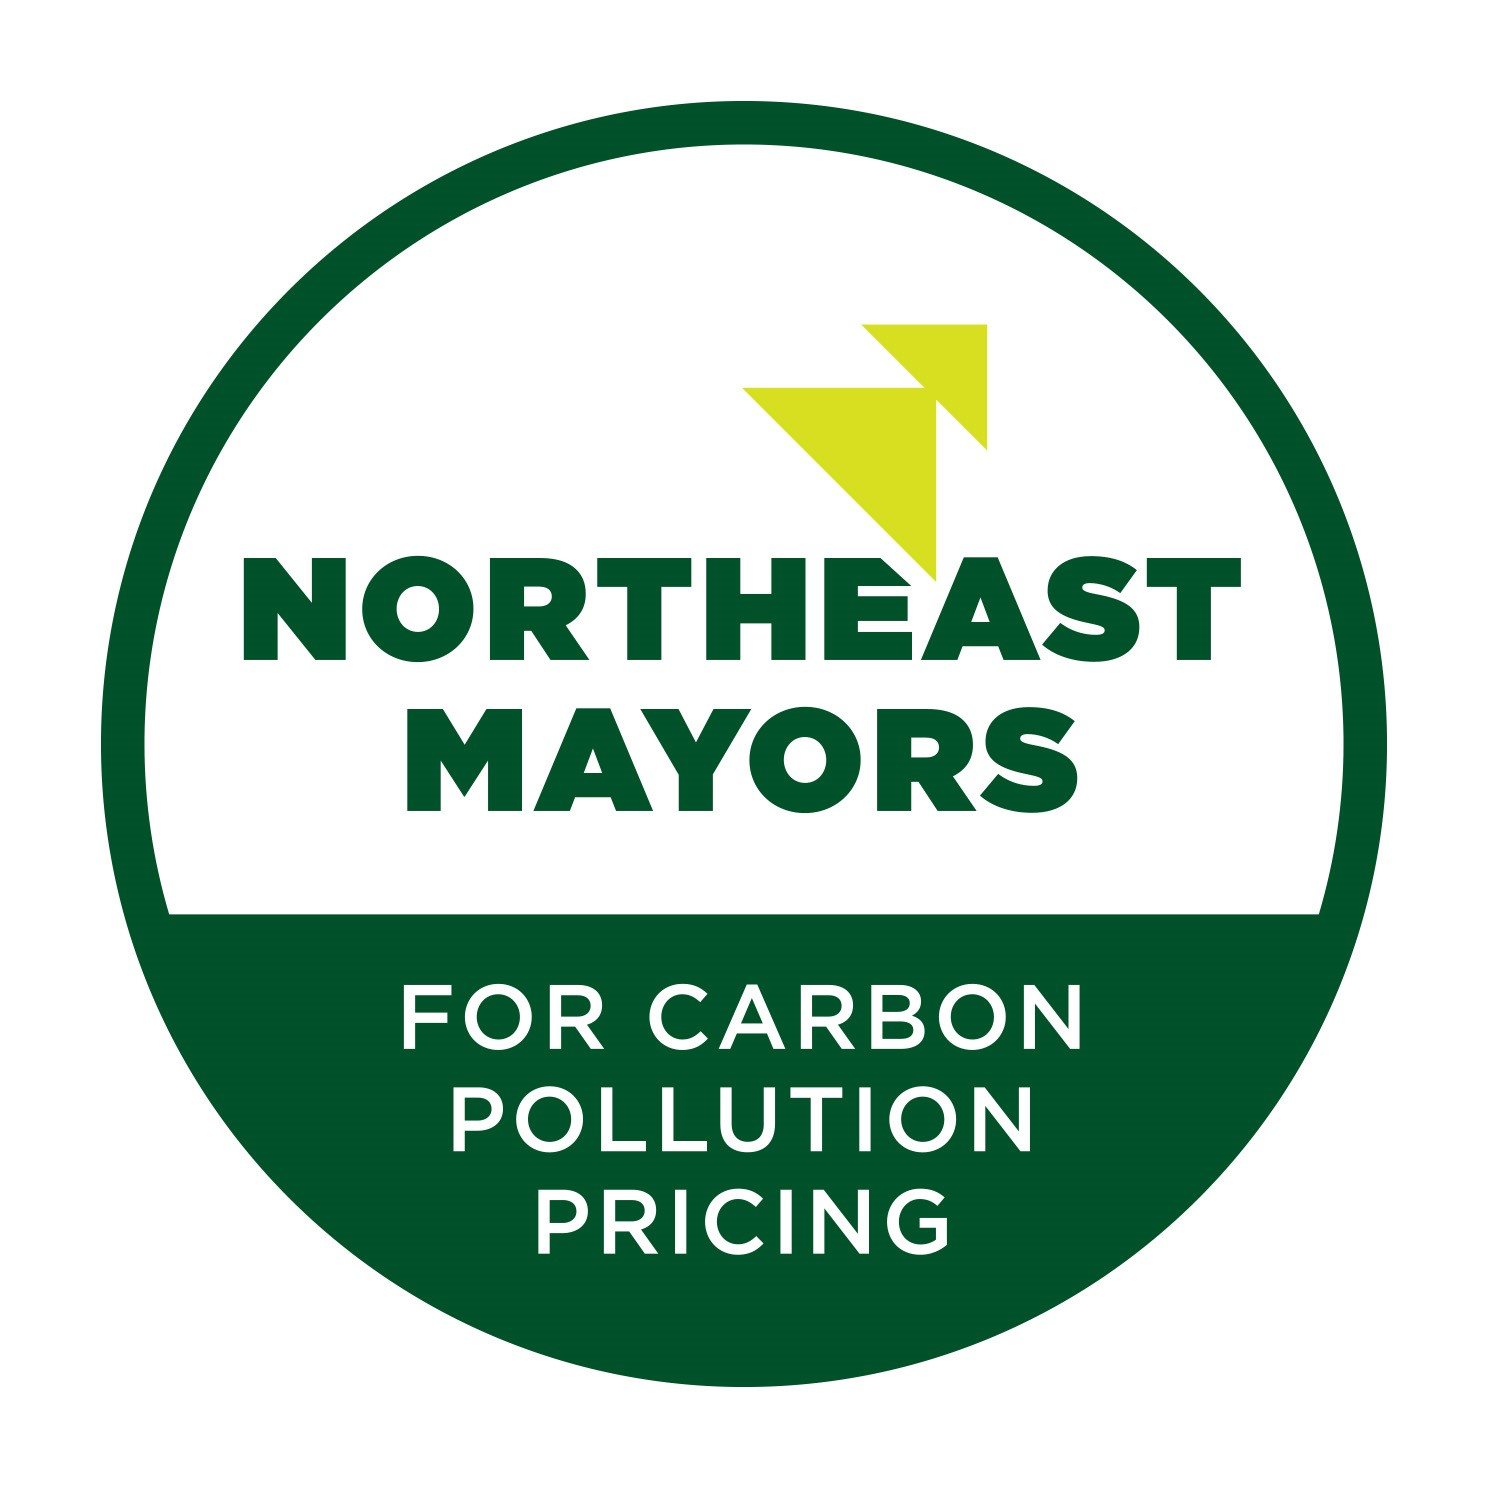 Northeast Mayors for Carbon Pollution Pricing